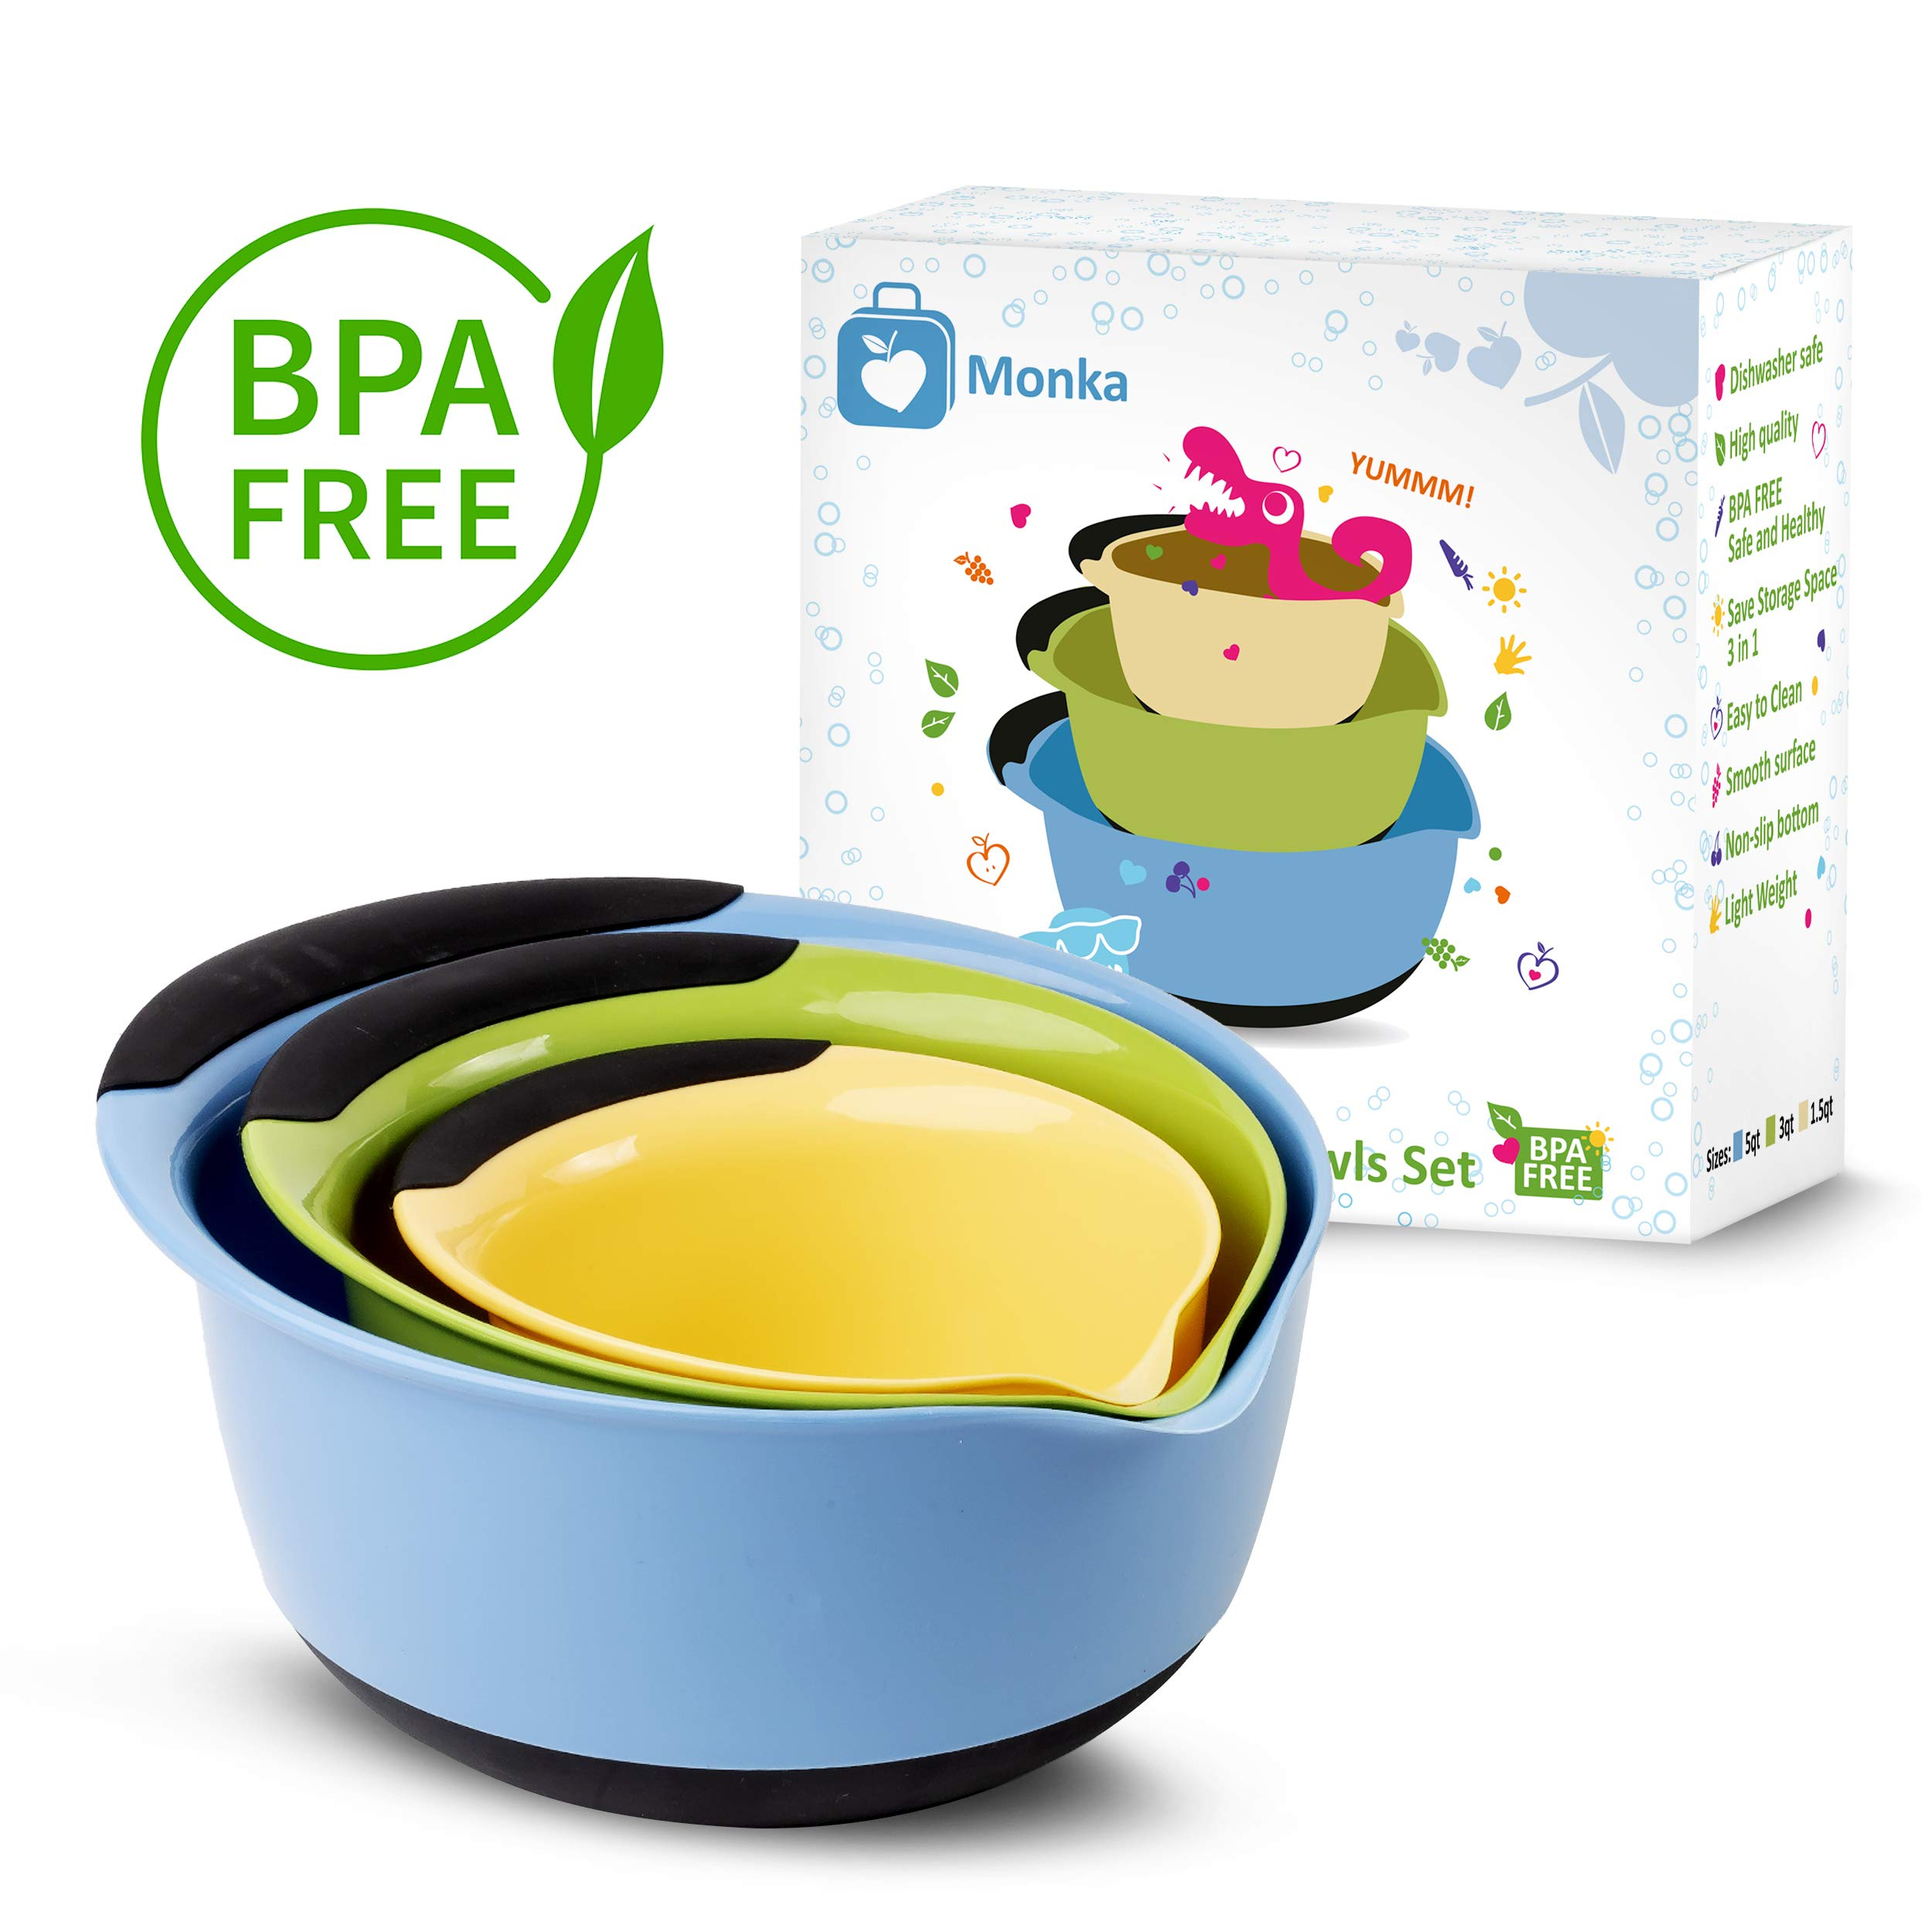 Premium Plastic Mixing Bowls (Set of 3) Sizes: 1.5, 3 & 5 QT - With Non Slip Bottom & Pouring Spout. For Healthy Cooking & Baking, Nesting and Stackable Free Bonus - measuring cup by MONKA (Image #7)